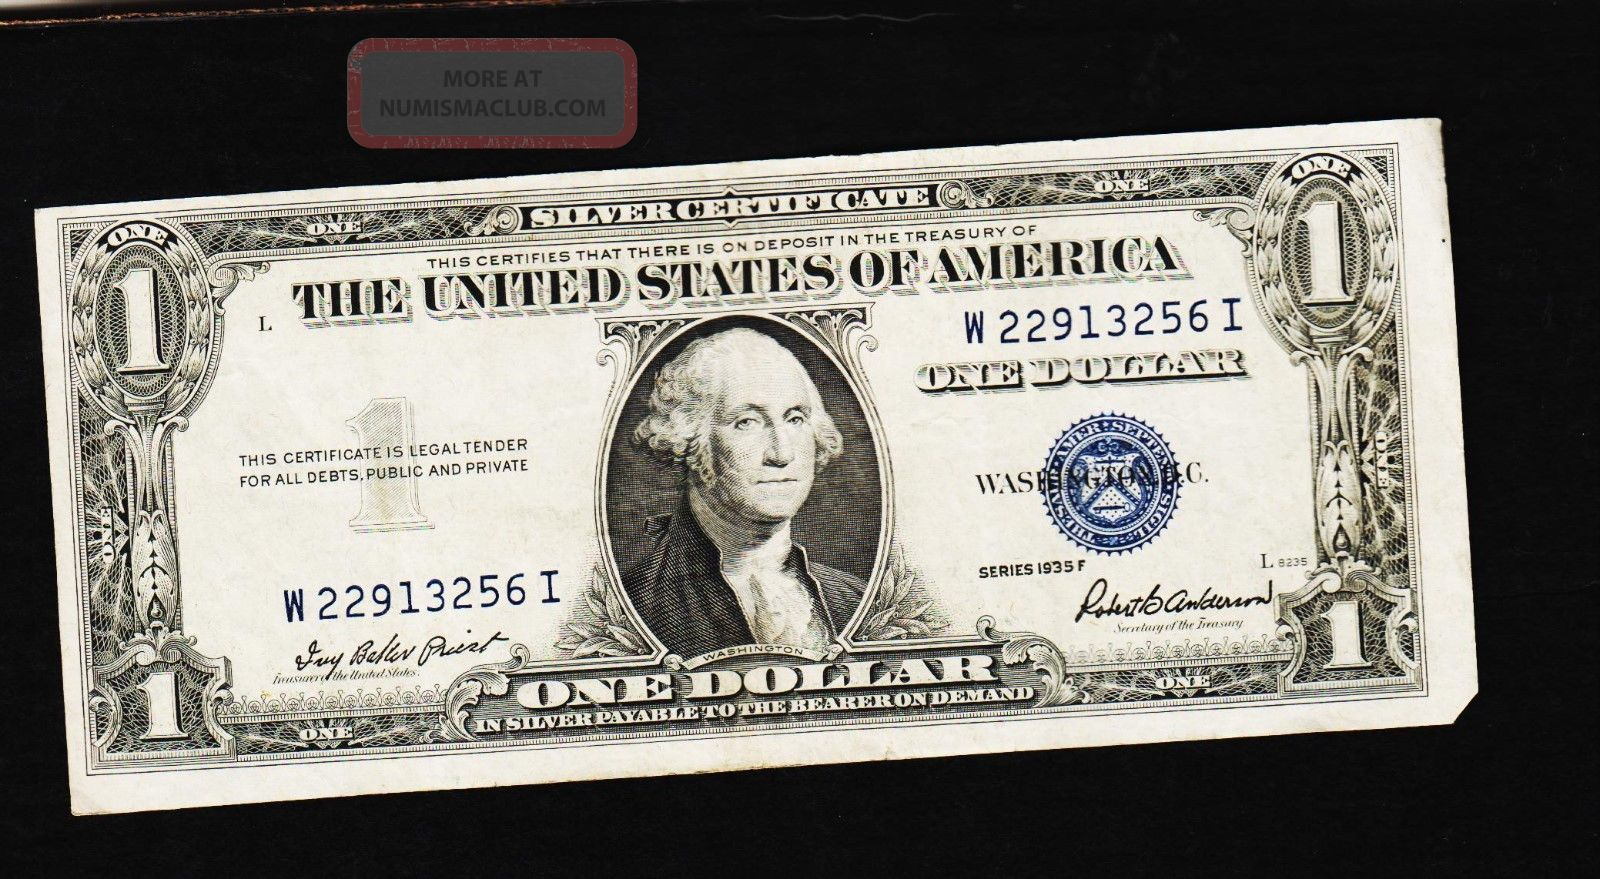 Series 1935 F One Dollar Silver Certificate==good/crisp Small Size Notes photo